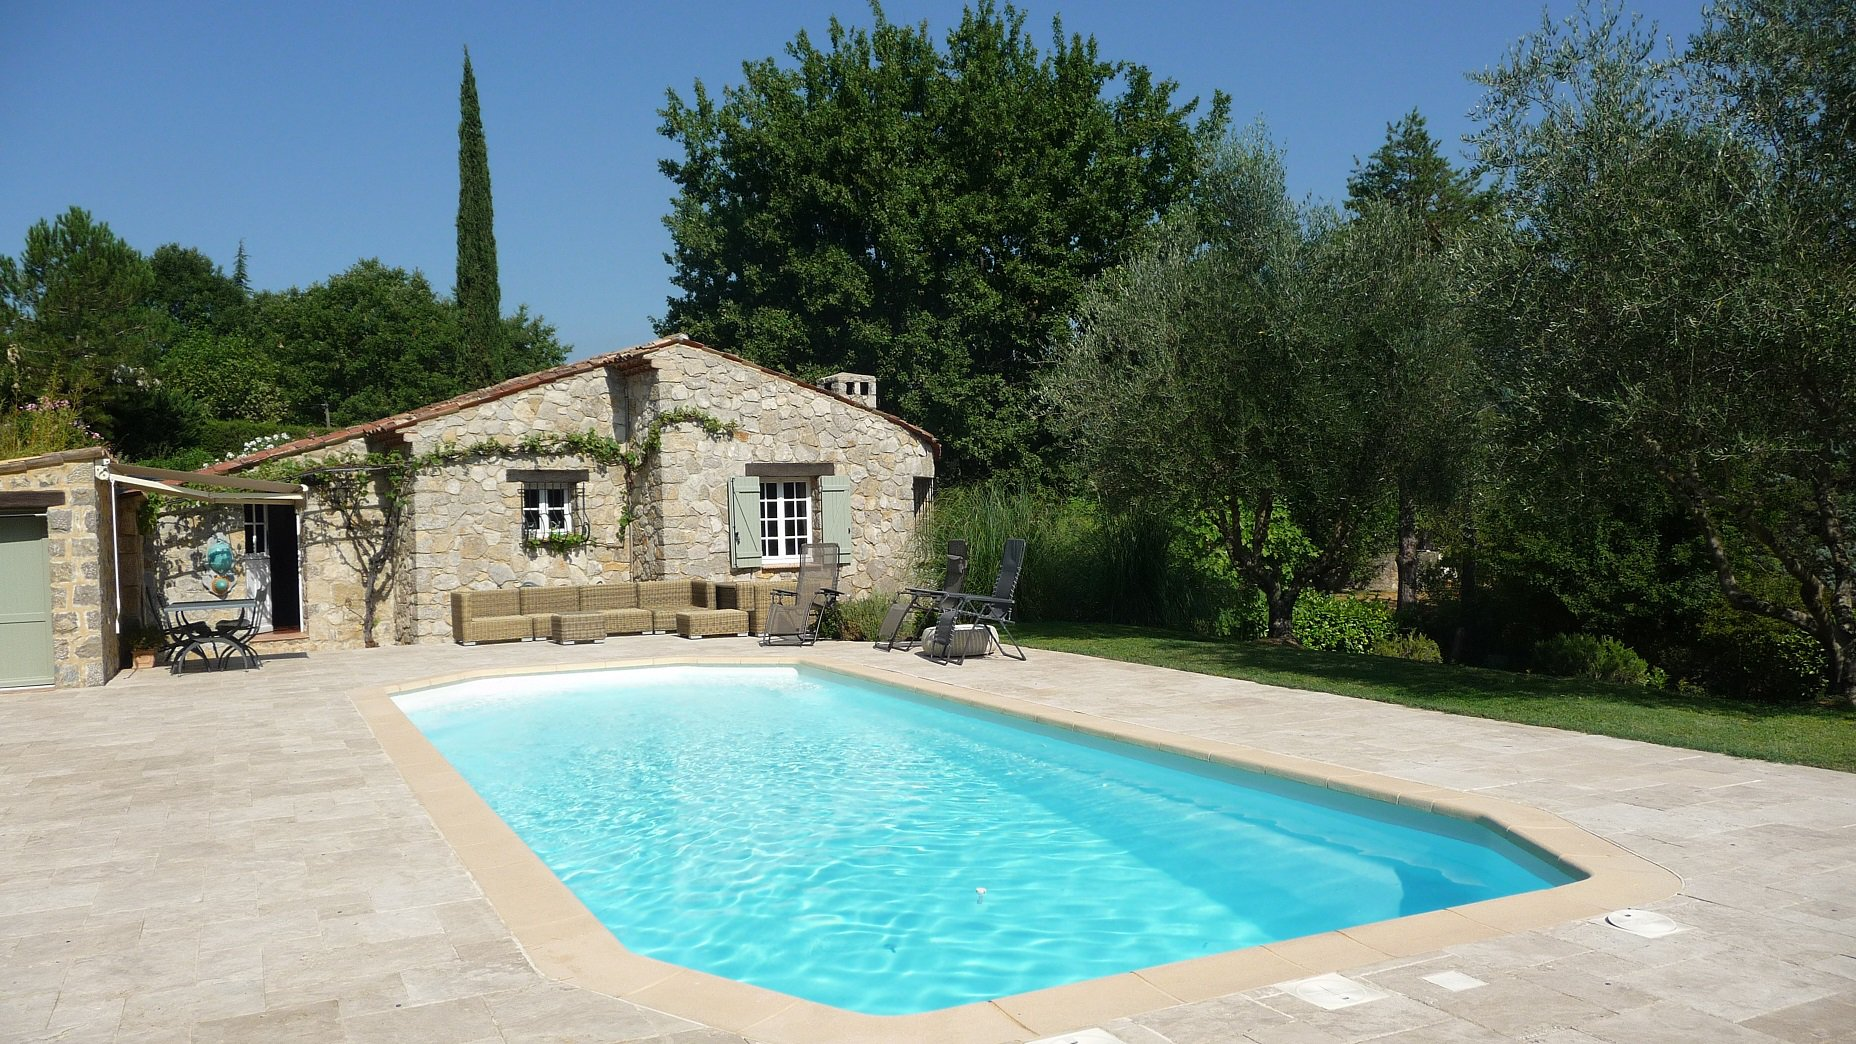 Pays de Fayence charming villa stone built renovated